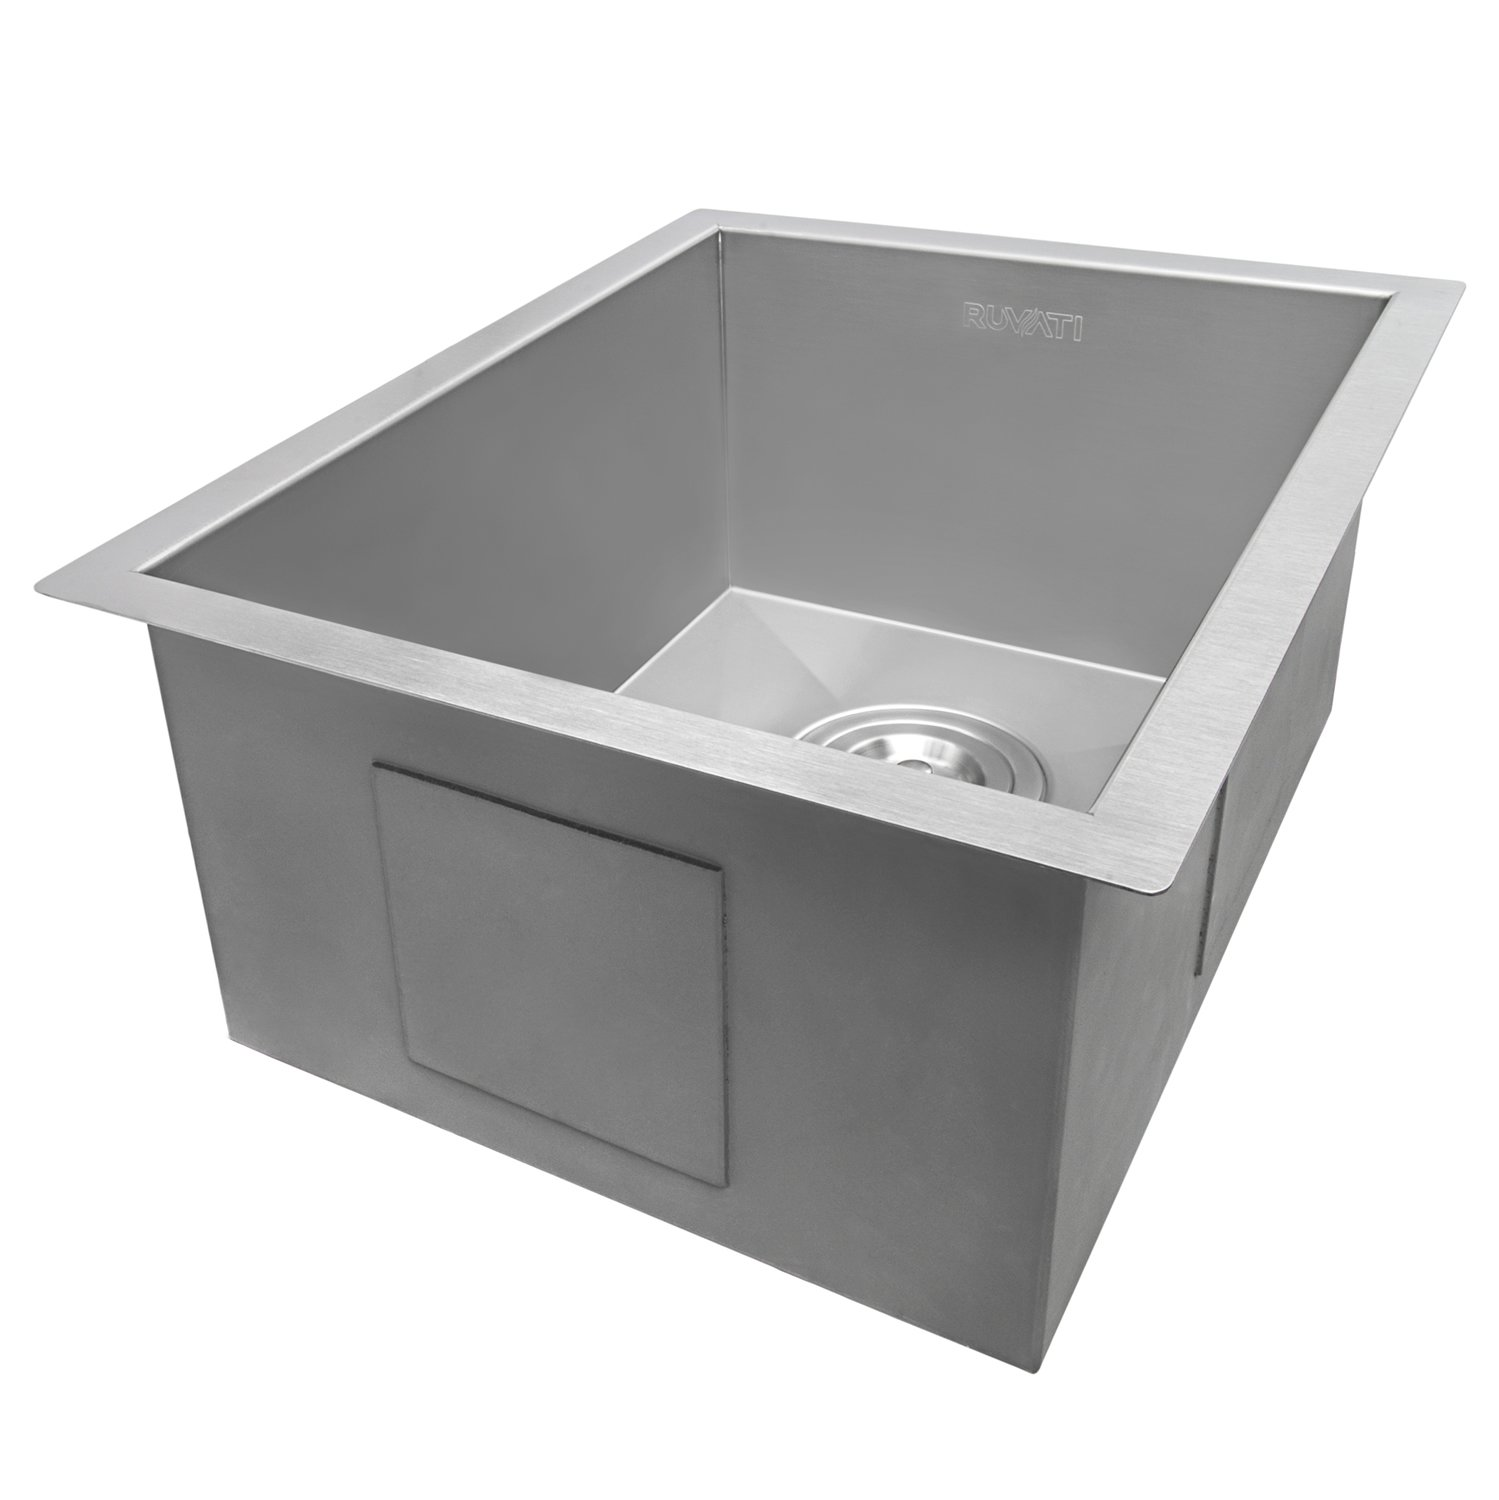 Ruvati 14-inch Undermount 16 Gauge Zero Raduis Bar Prep Kitchen Sink Stainless Steel Single Bowl - RVH7110 by Ruvati (Image #5)